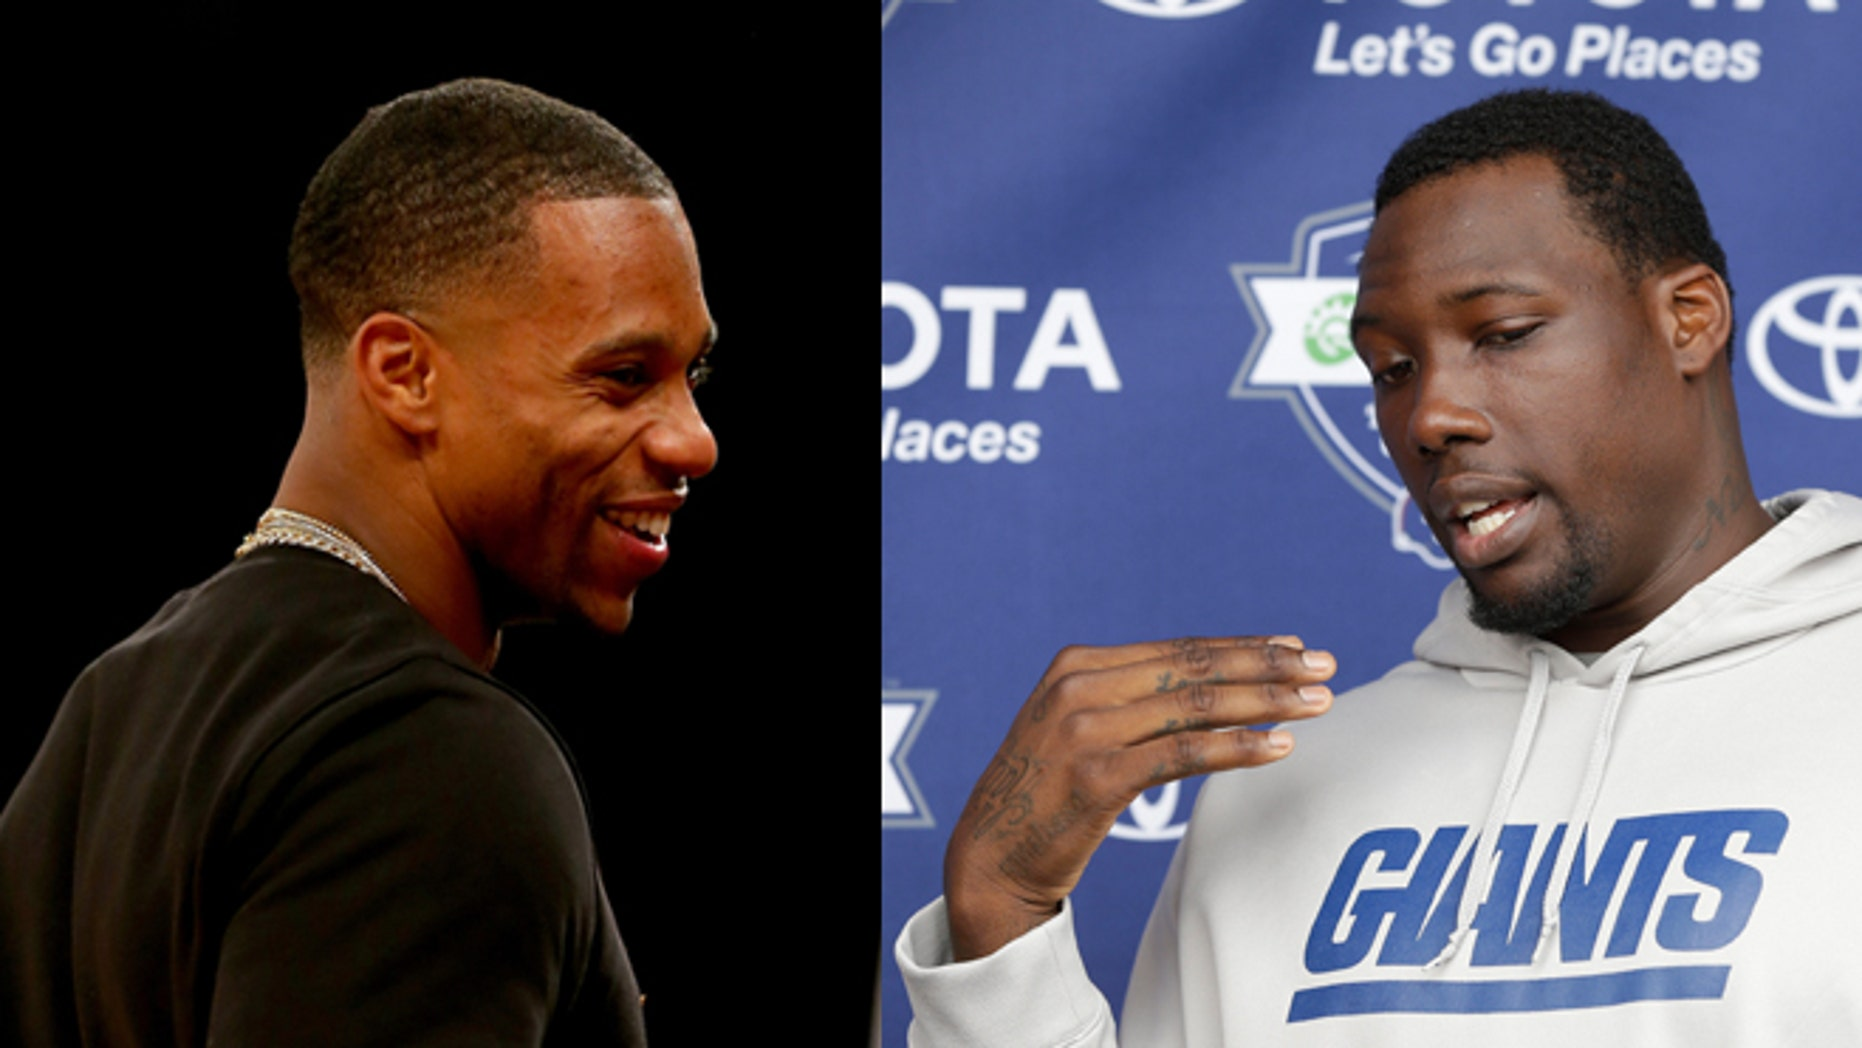 New York Giants wide receivers Victor Cruz (left) and Jason Pierre-Paul.